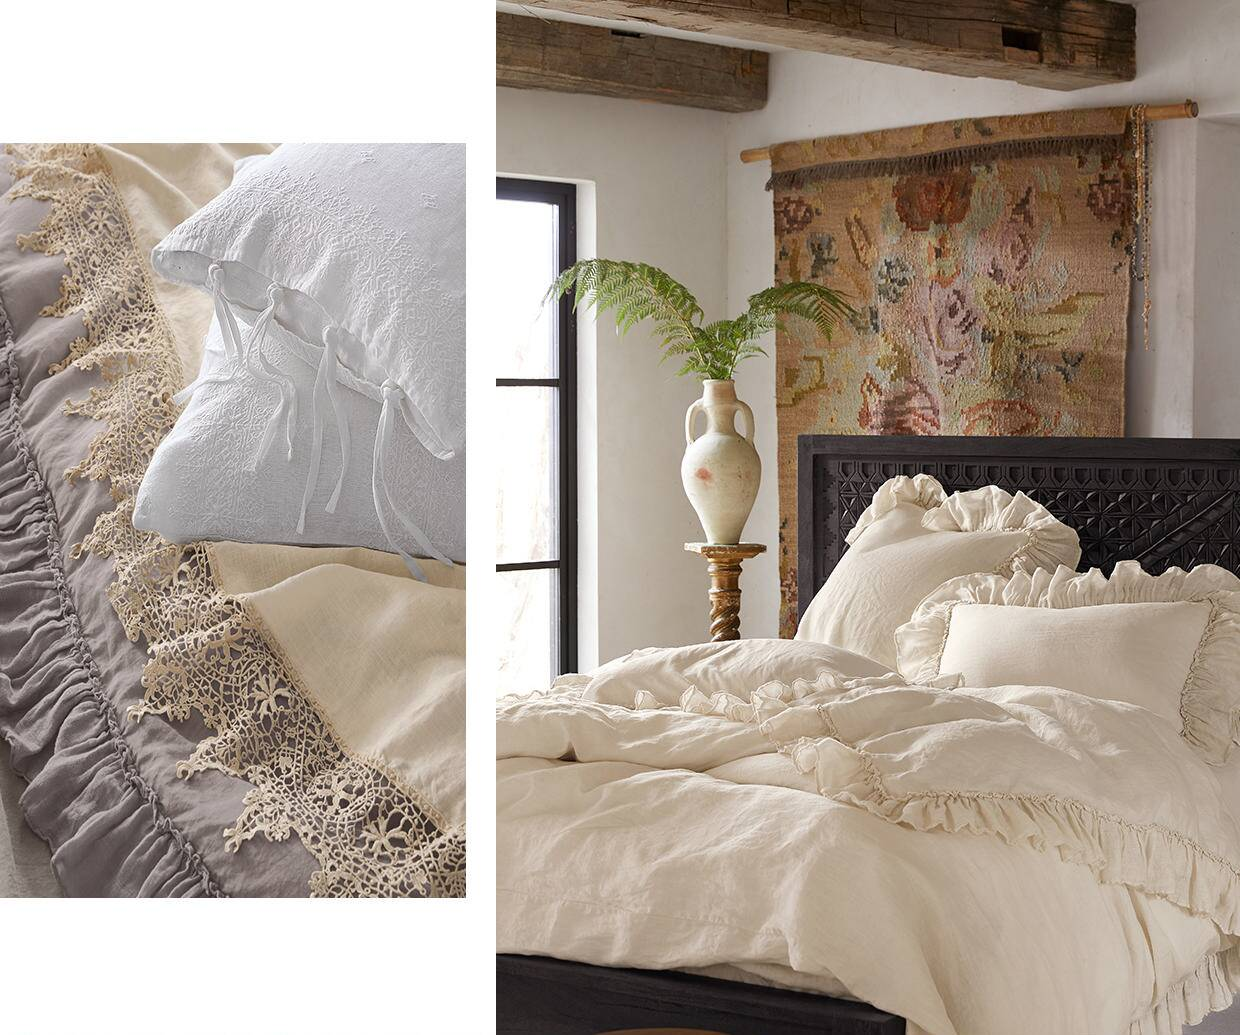 Envelope Yourself in Luxurious Linen Bedding